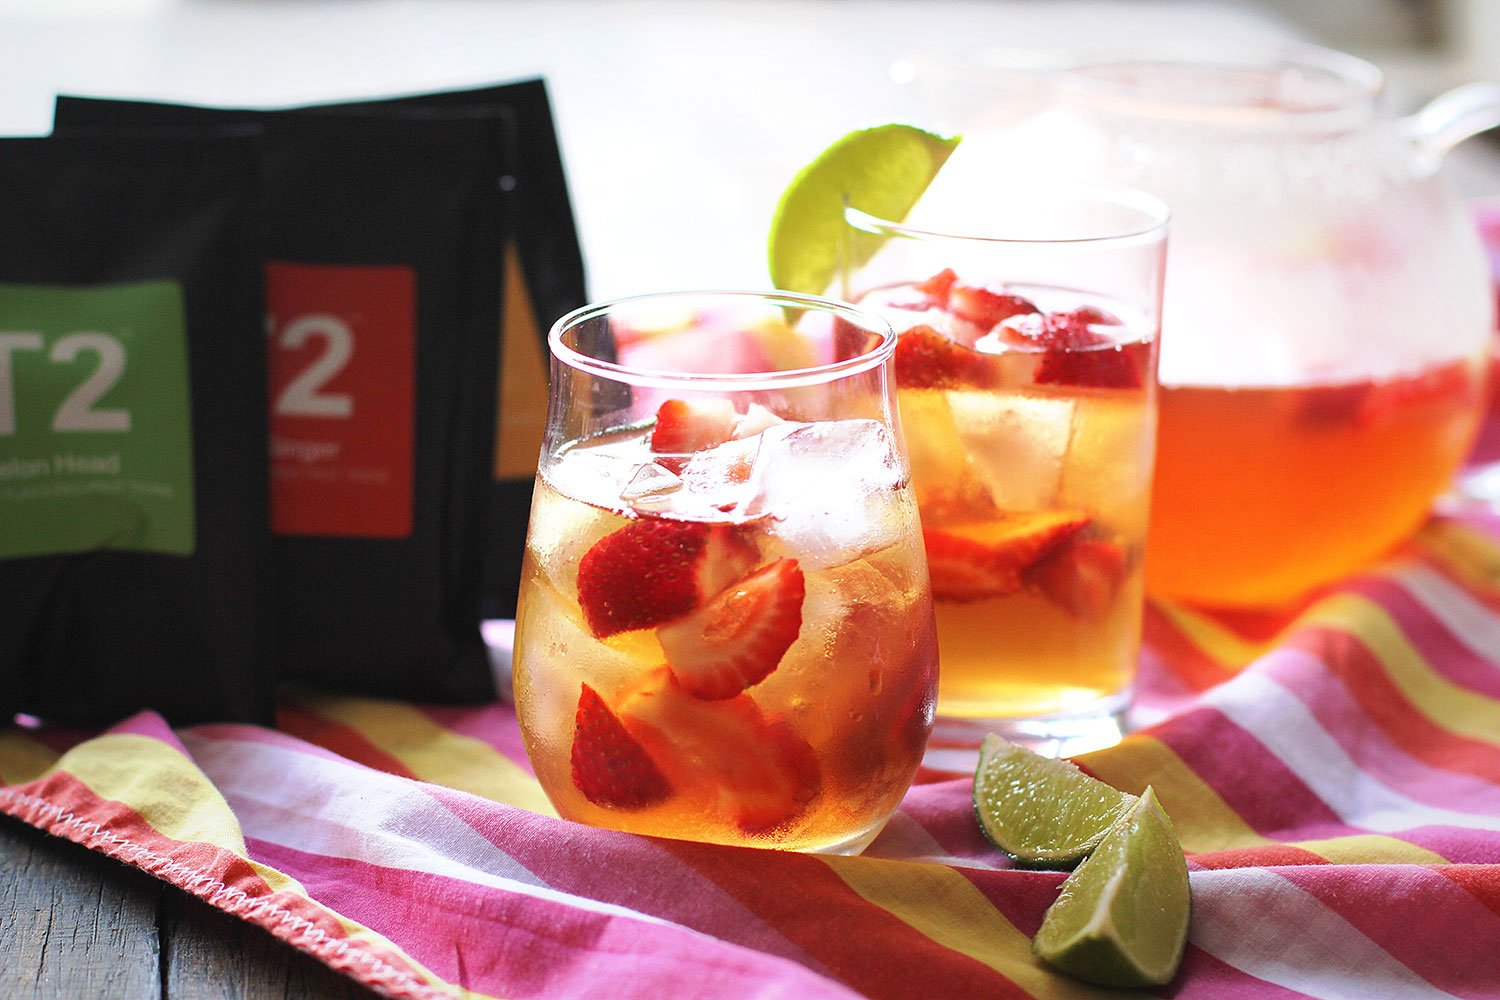 Peaches and Cream Iced Tea from T2 Teas